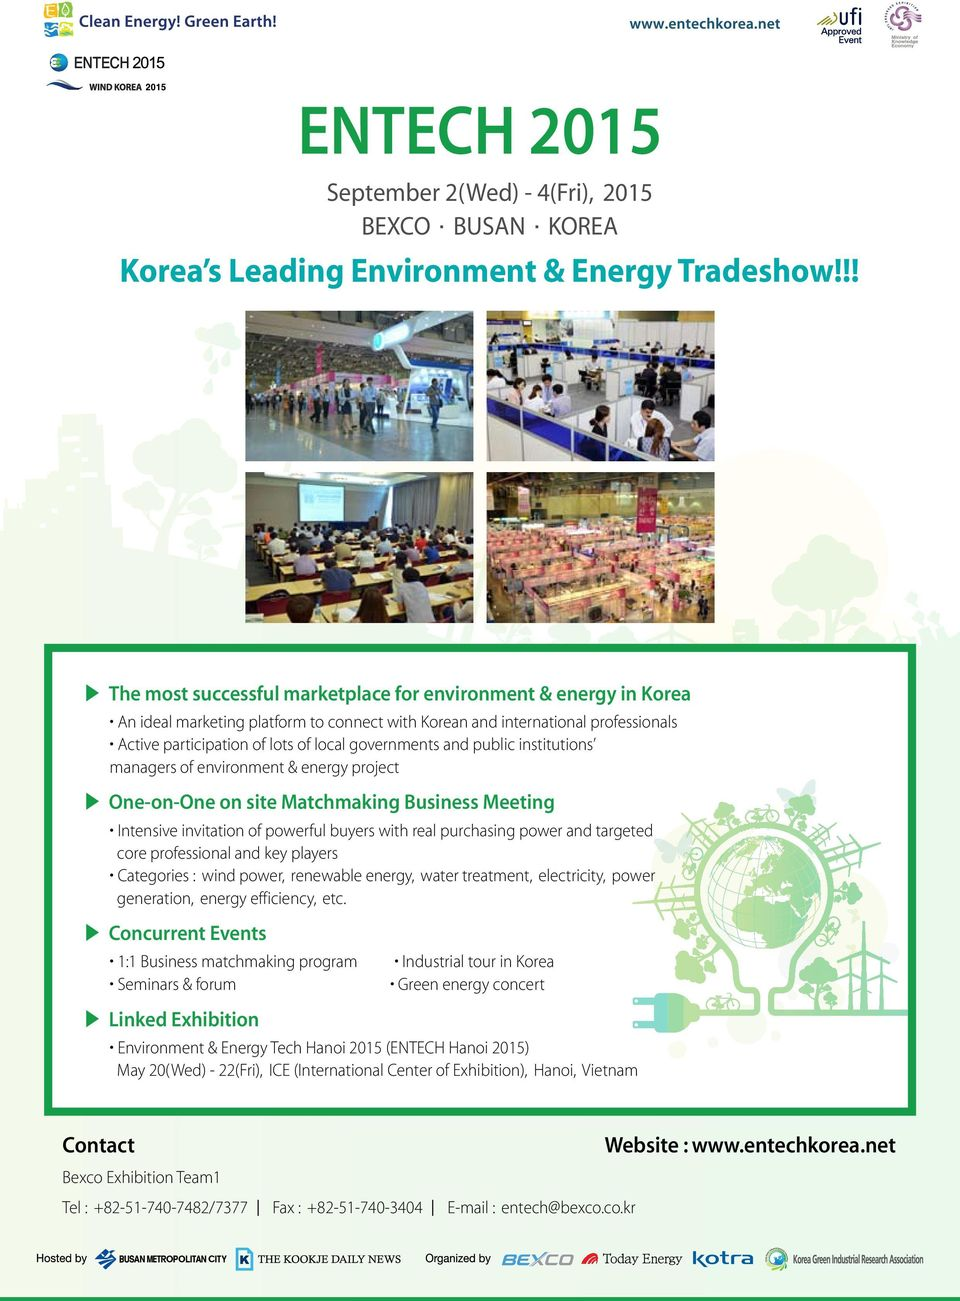 !! The most successful marketplace for environment & energy in Korea